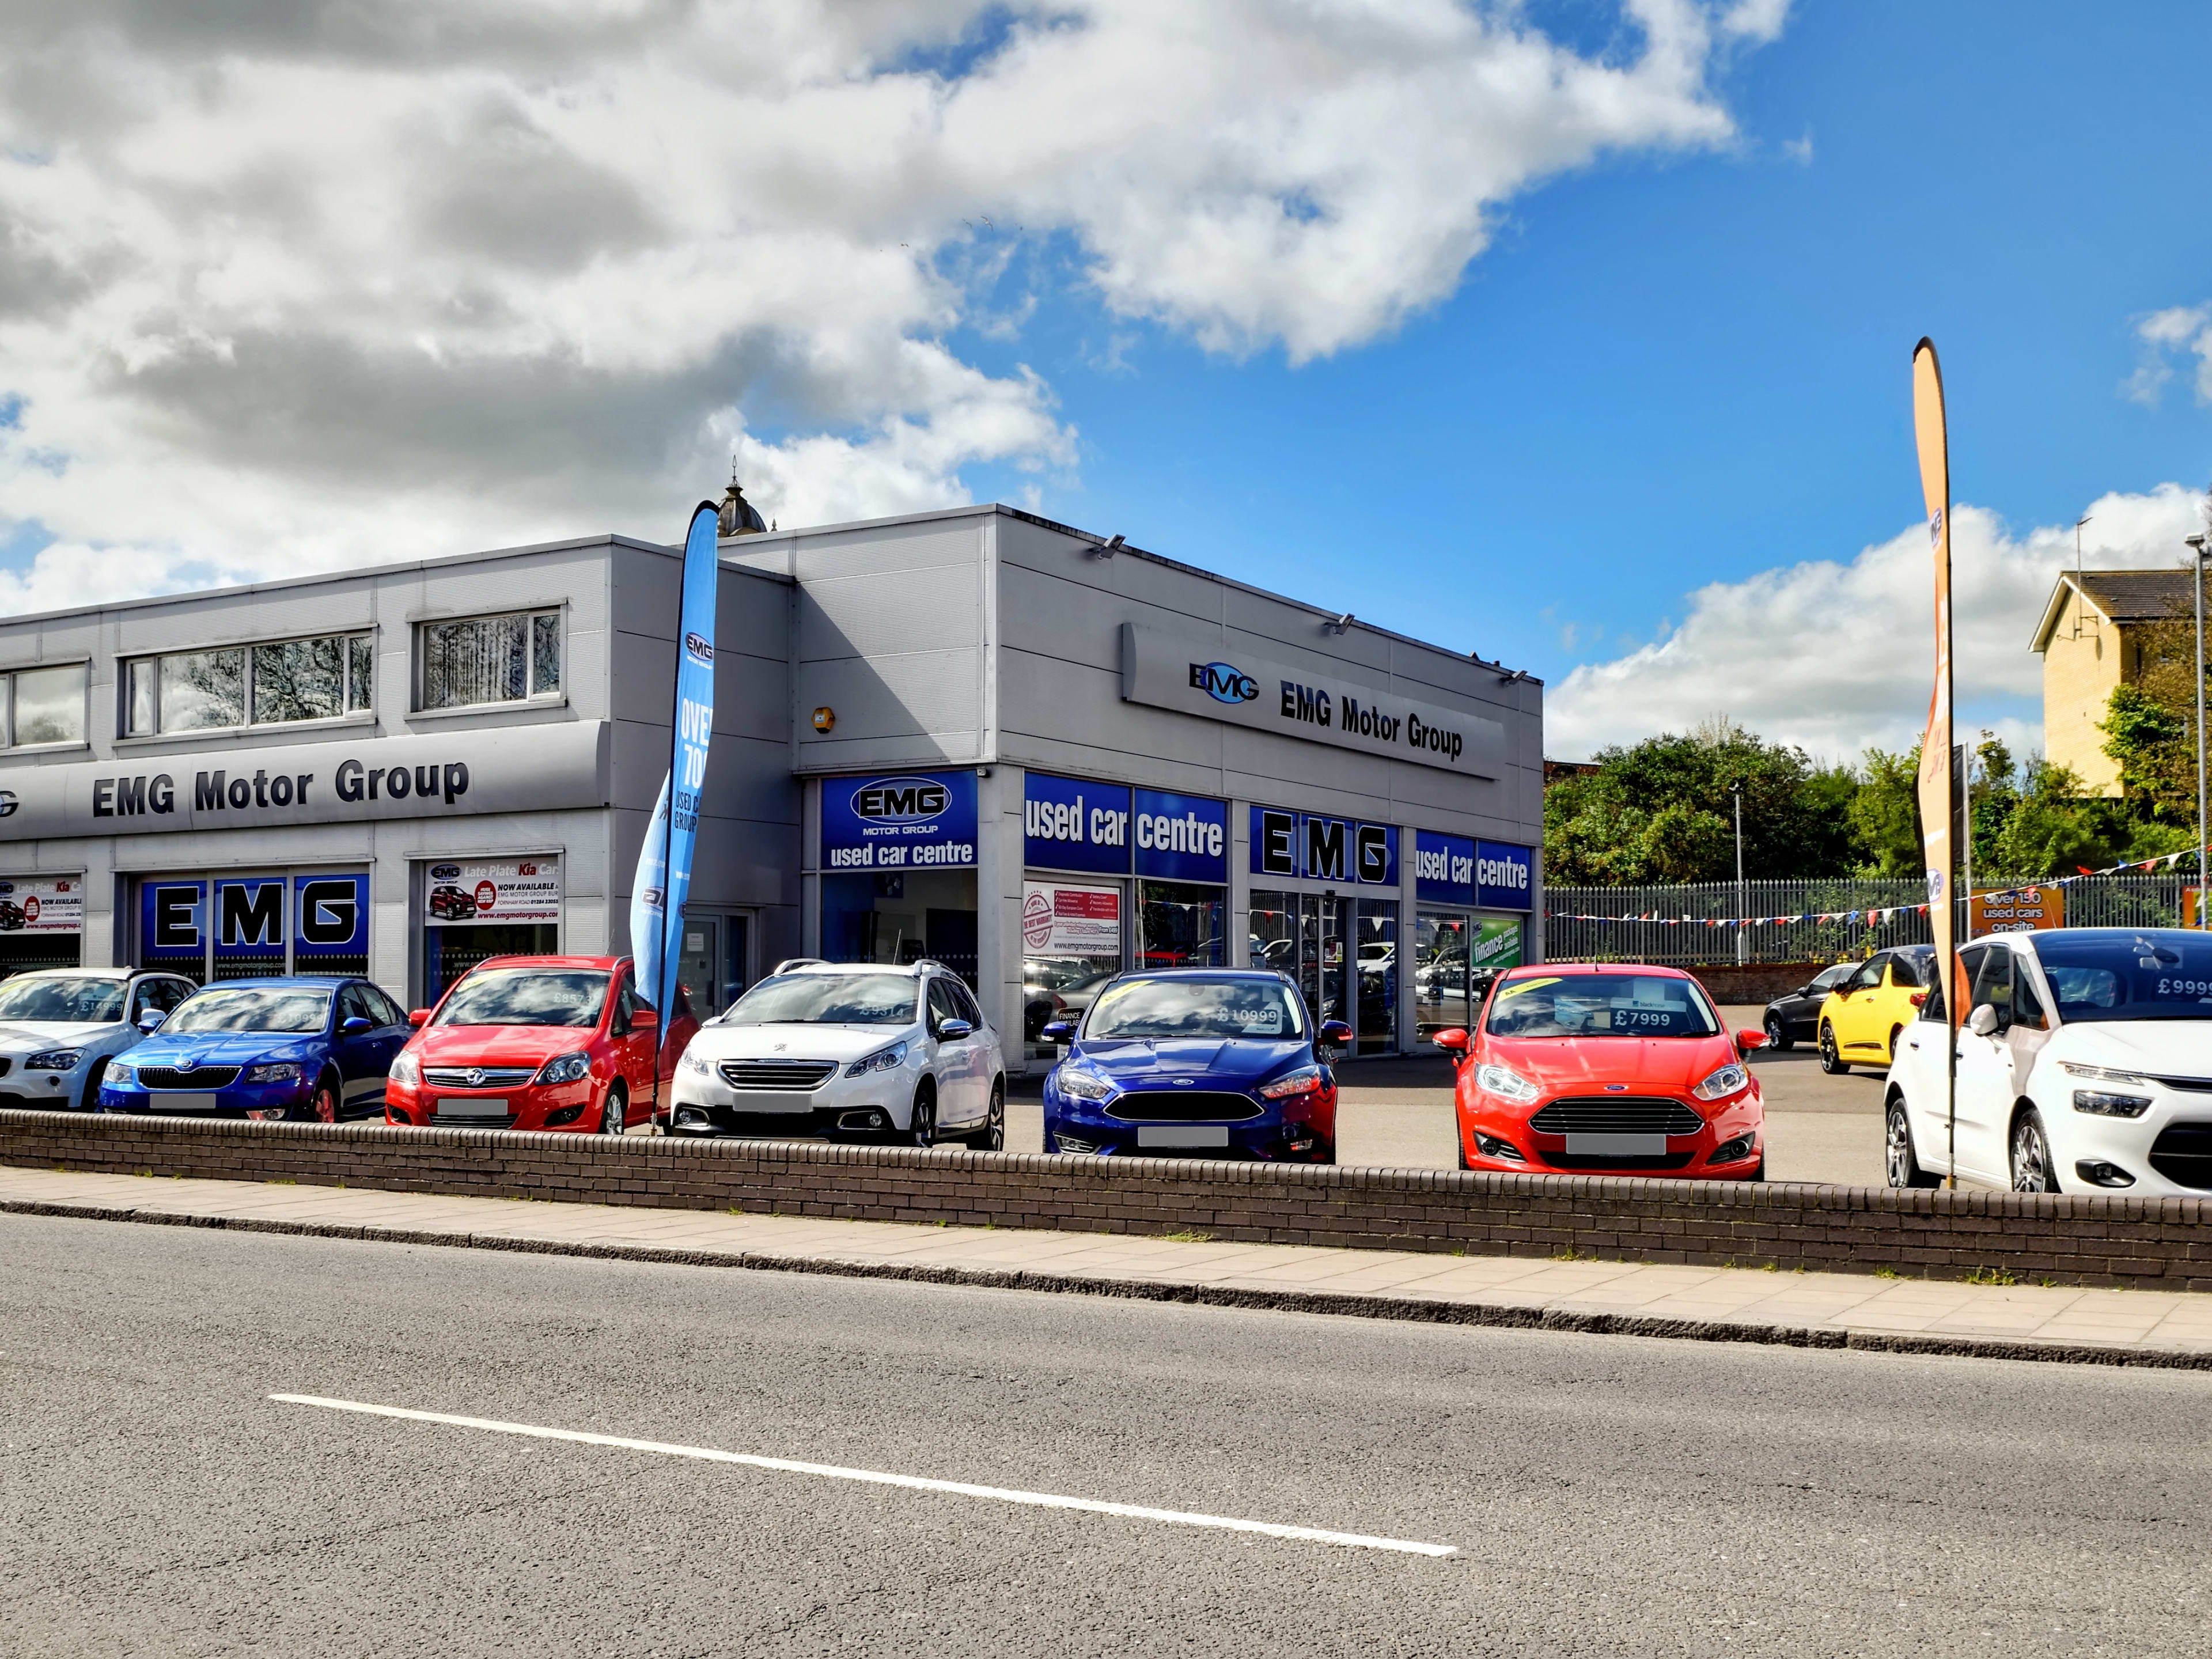 Contact Us In Bury St Edmunds Emg Motor Group